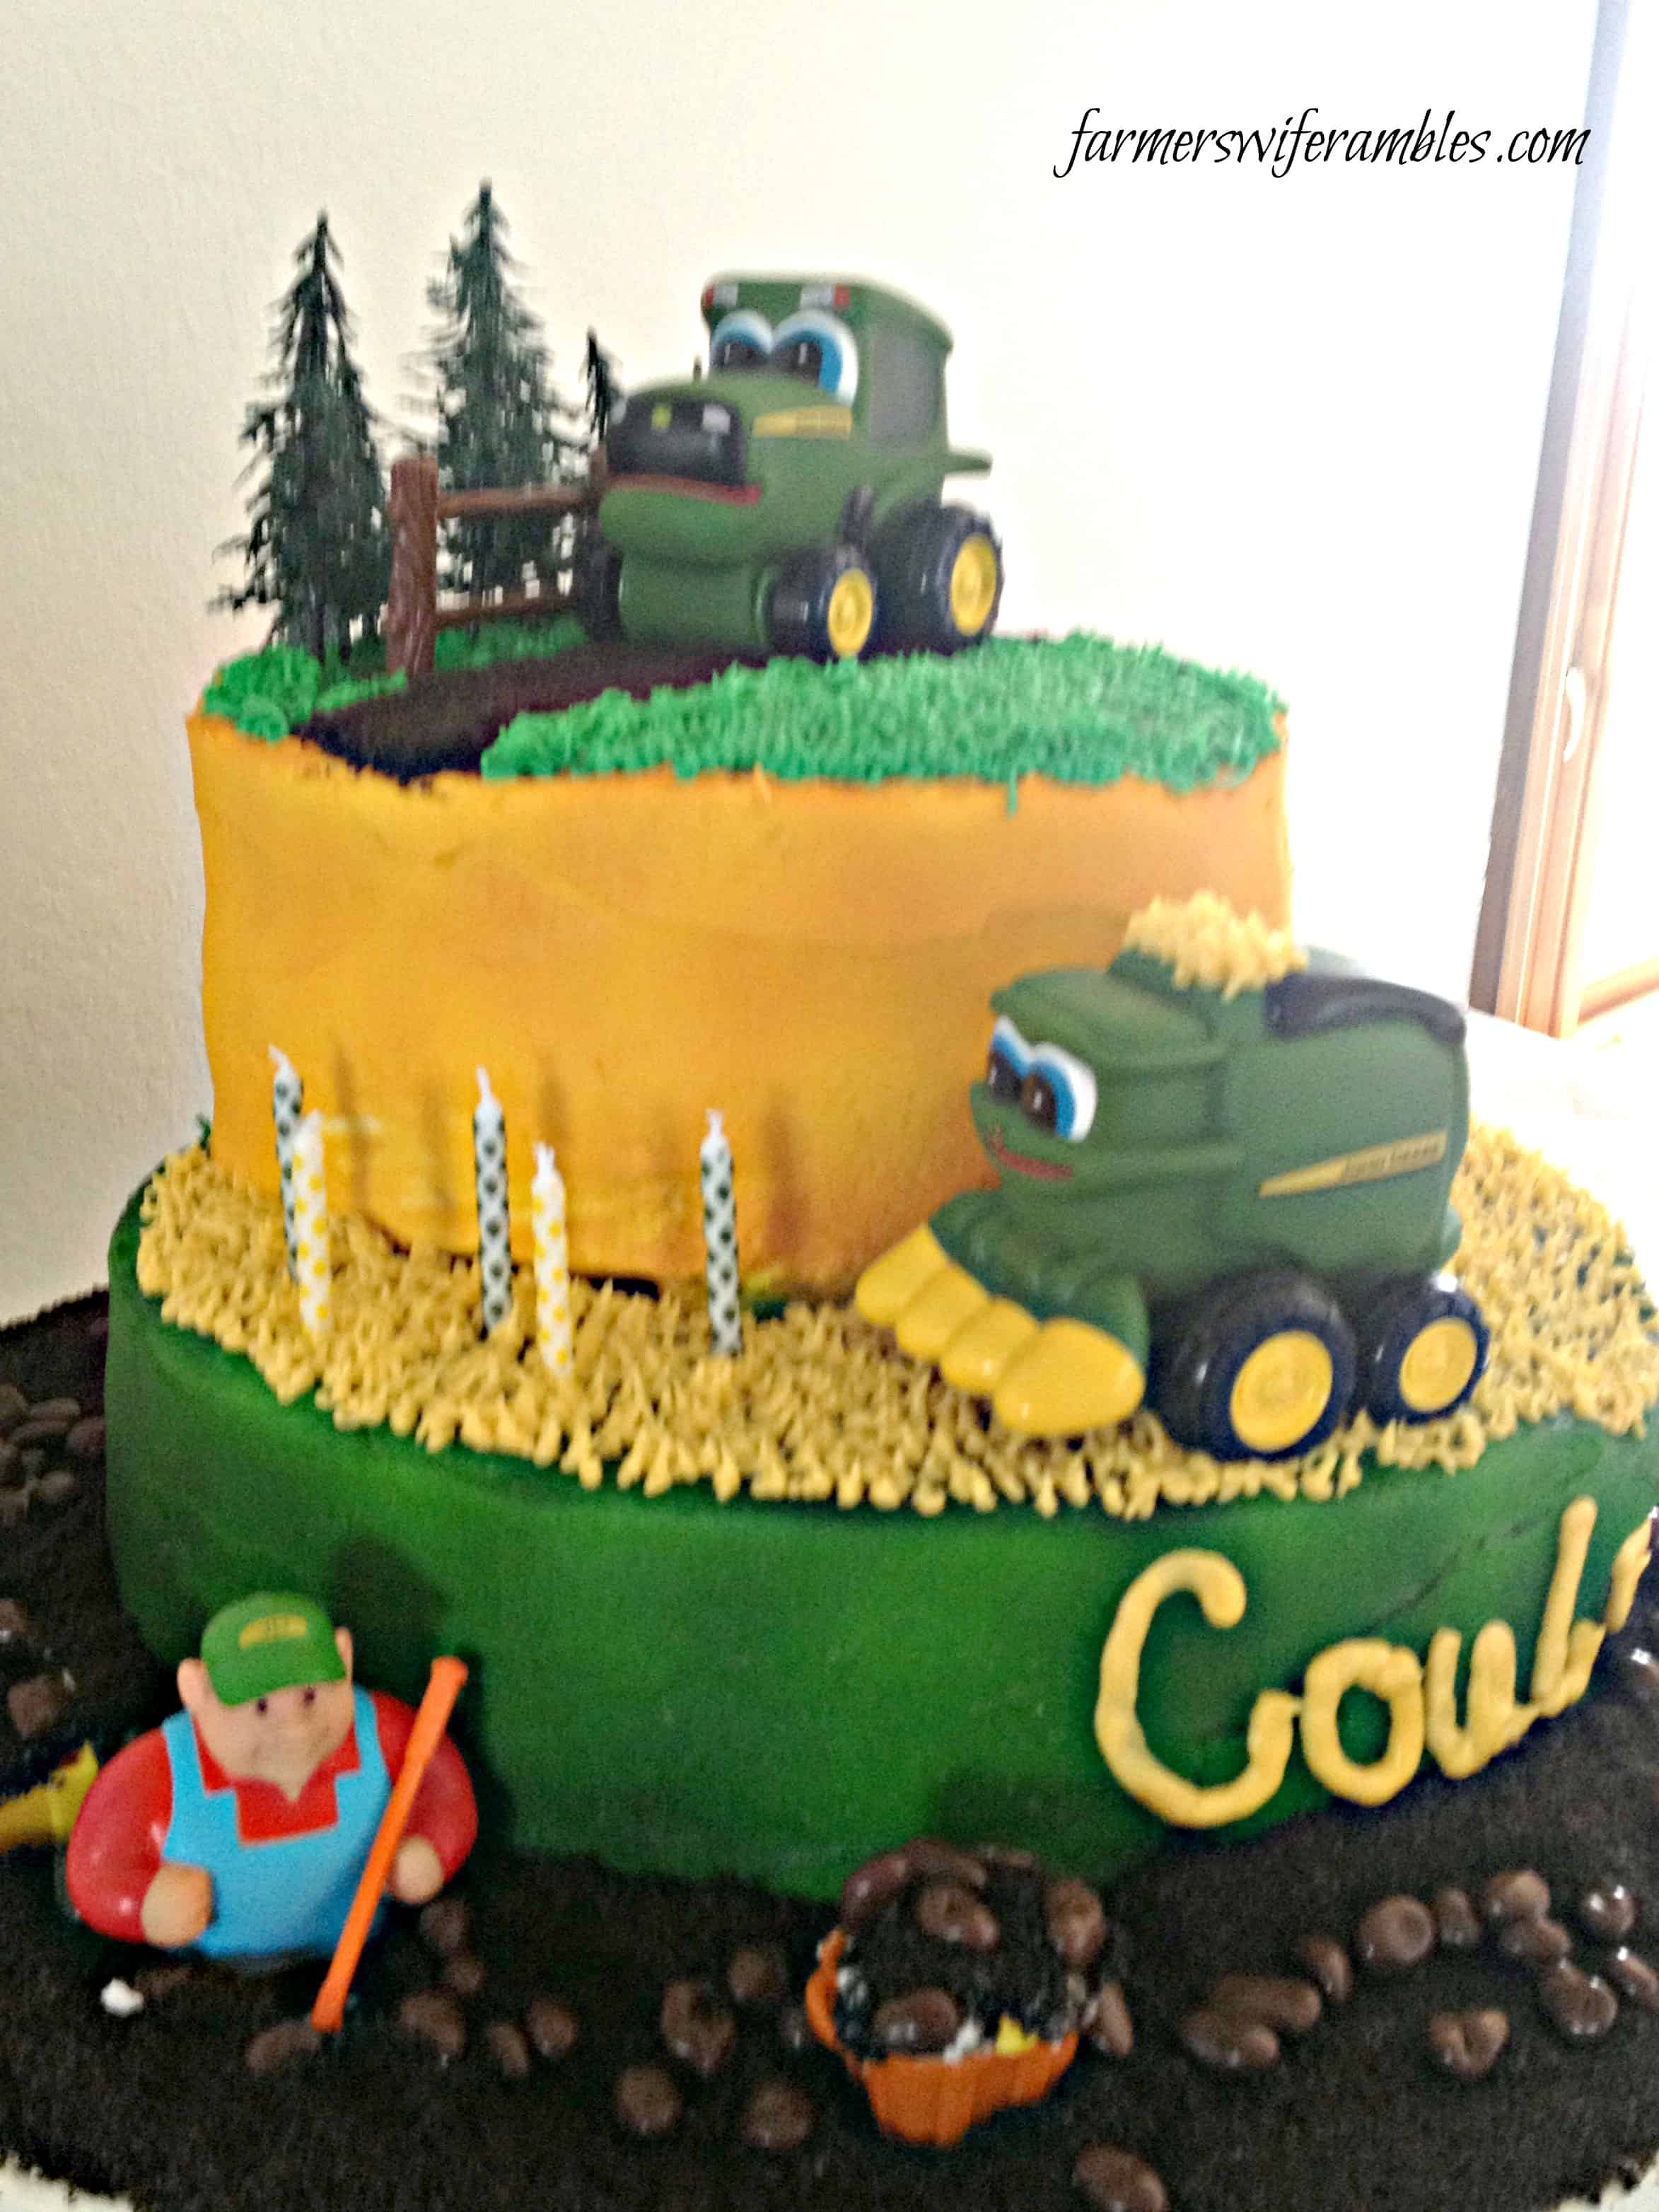 Fantastic Coulters John Deere 5Th Birthday Cake Wm Farmers Wife Rambles Funny Birthday Cards Online Elaedamsfinfo